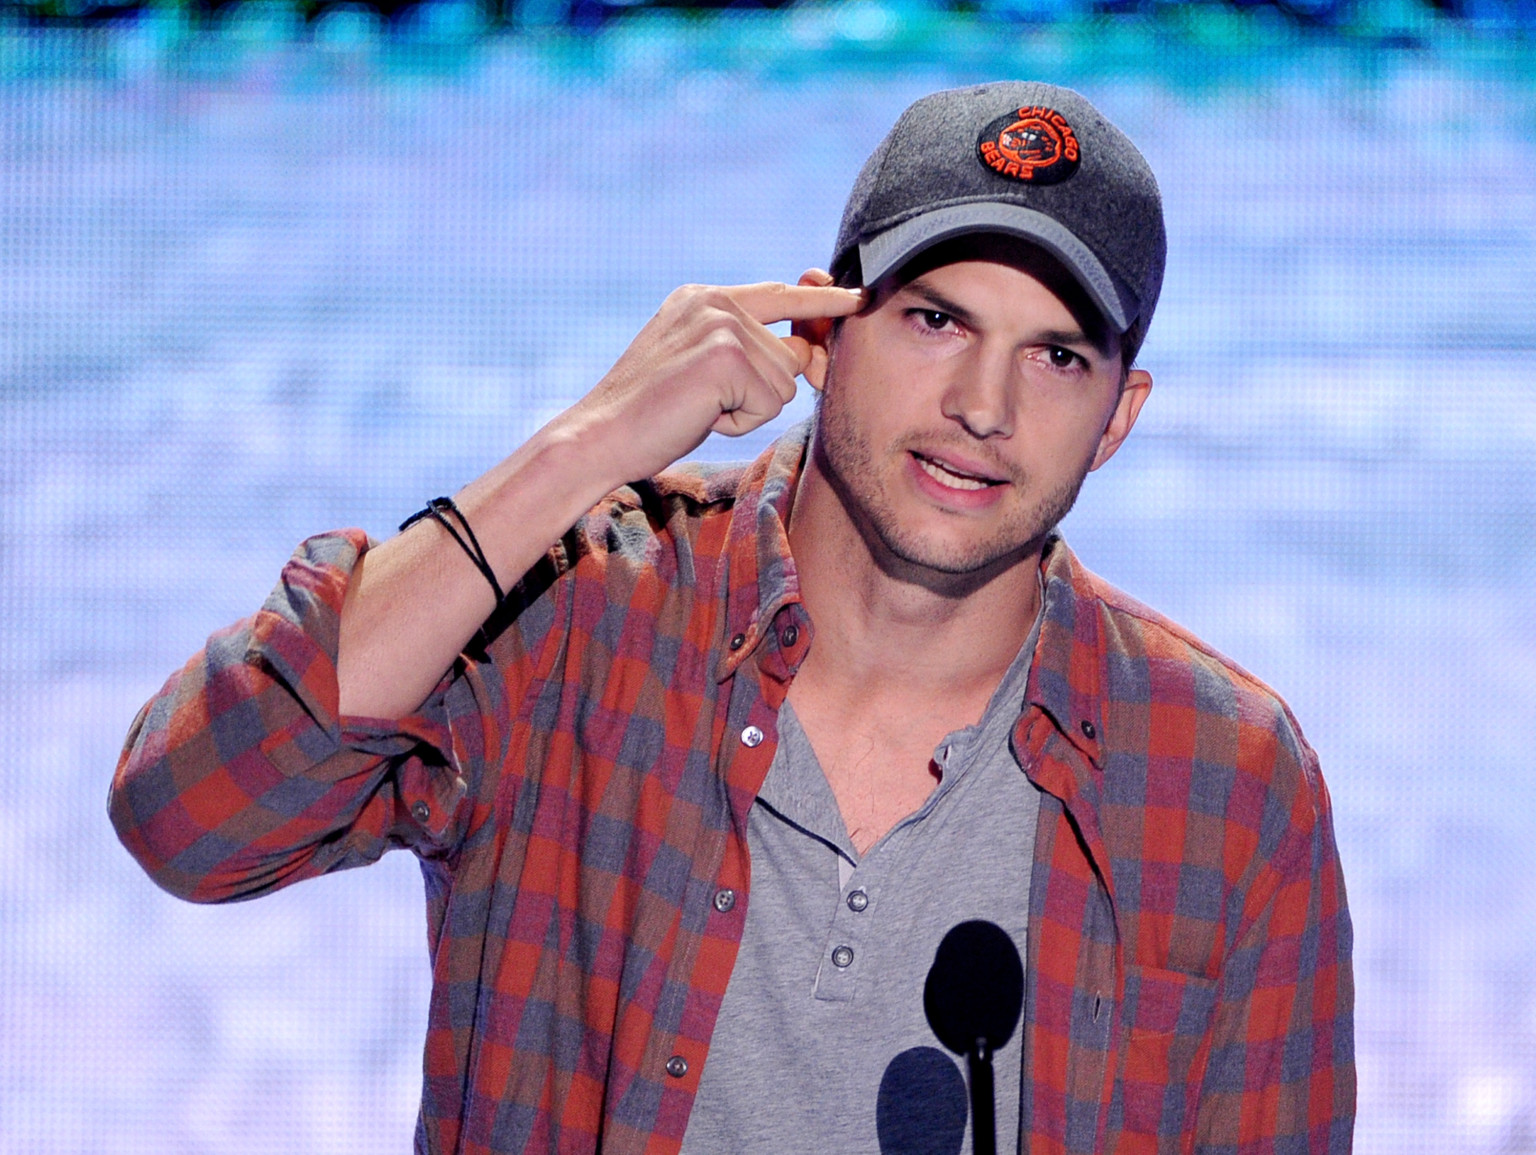 ACTOR 'ASHTON KUTCHER' GIVES INSPIRATIONAL LIFESTYLE SPEECH AT TEEN CHOICE AWARDS!